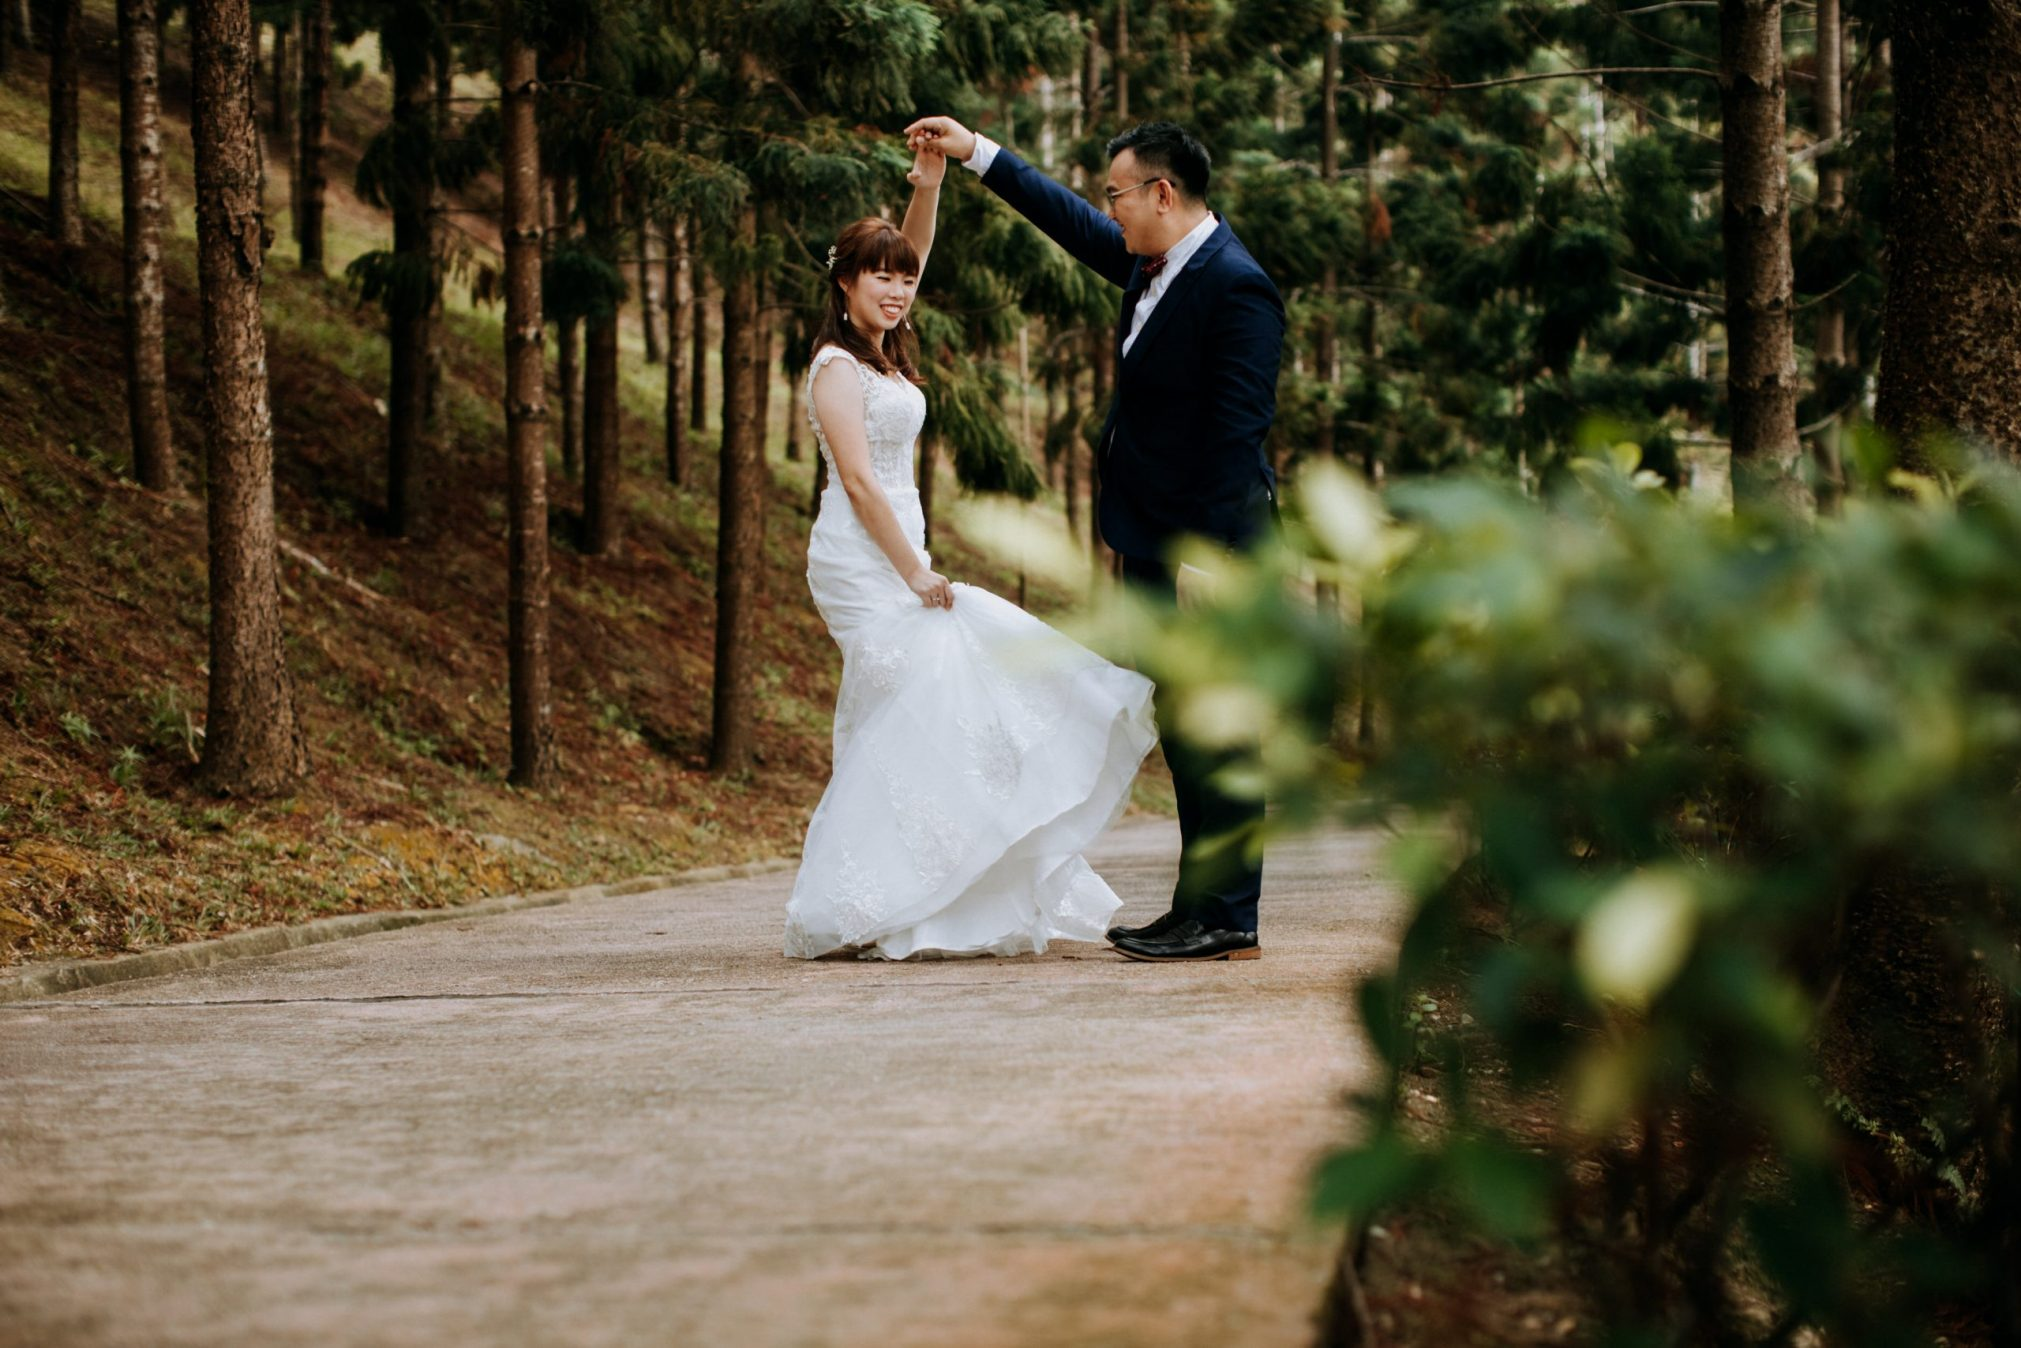 cliff choong destination portrait and wedding photographer malaysia kuala lumpur prewedding sunset golden sunrise shots bride and groom melaka desert couple kiss romantic intimate moment scene wish woods and forest